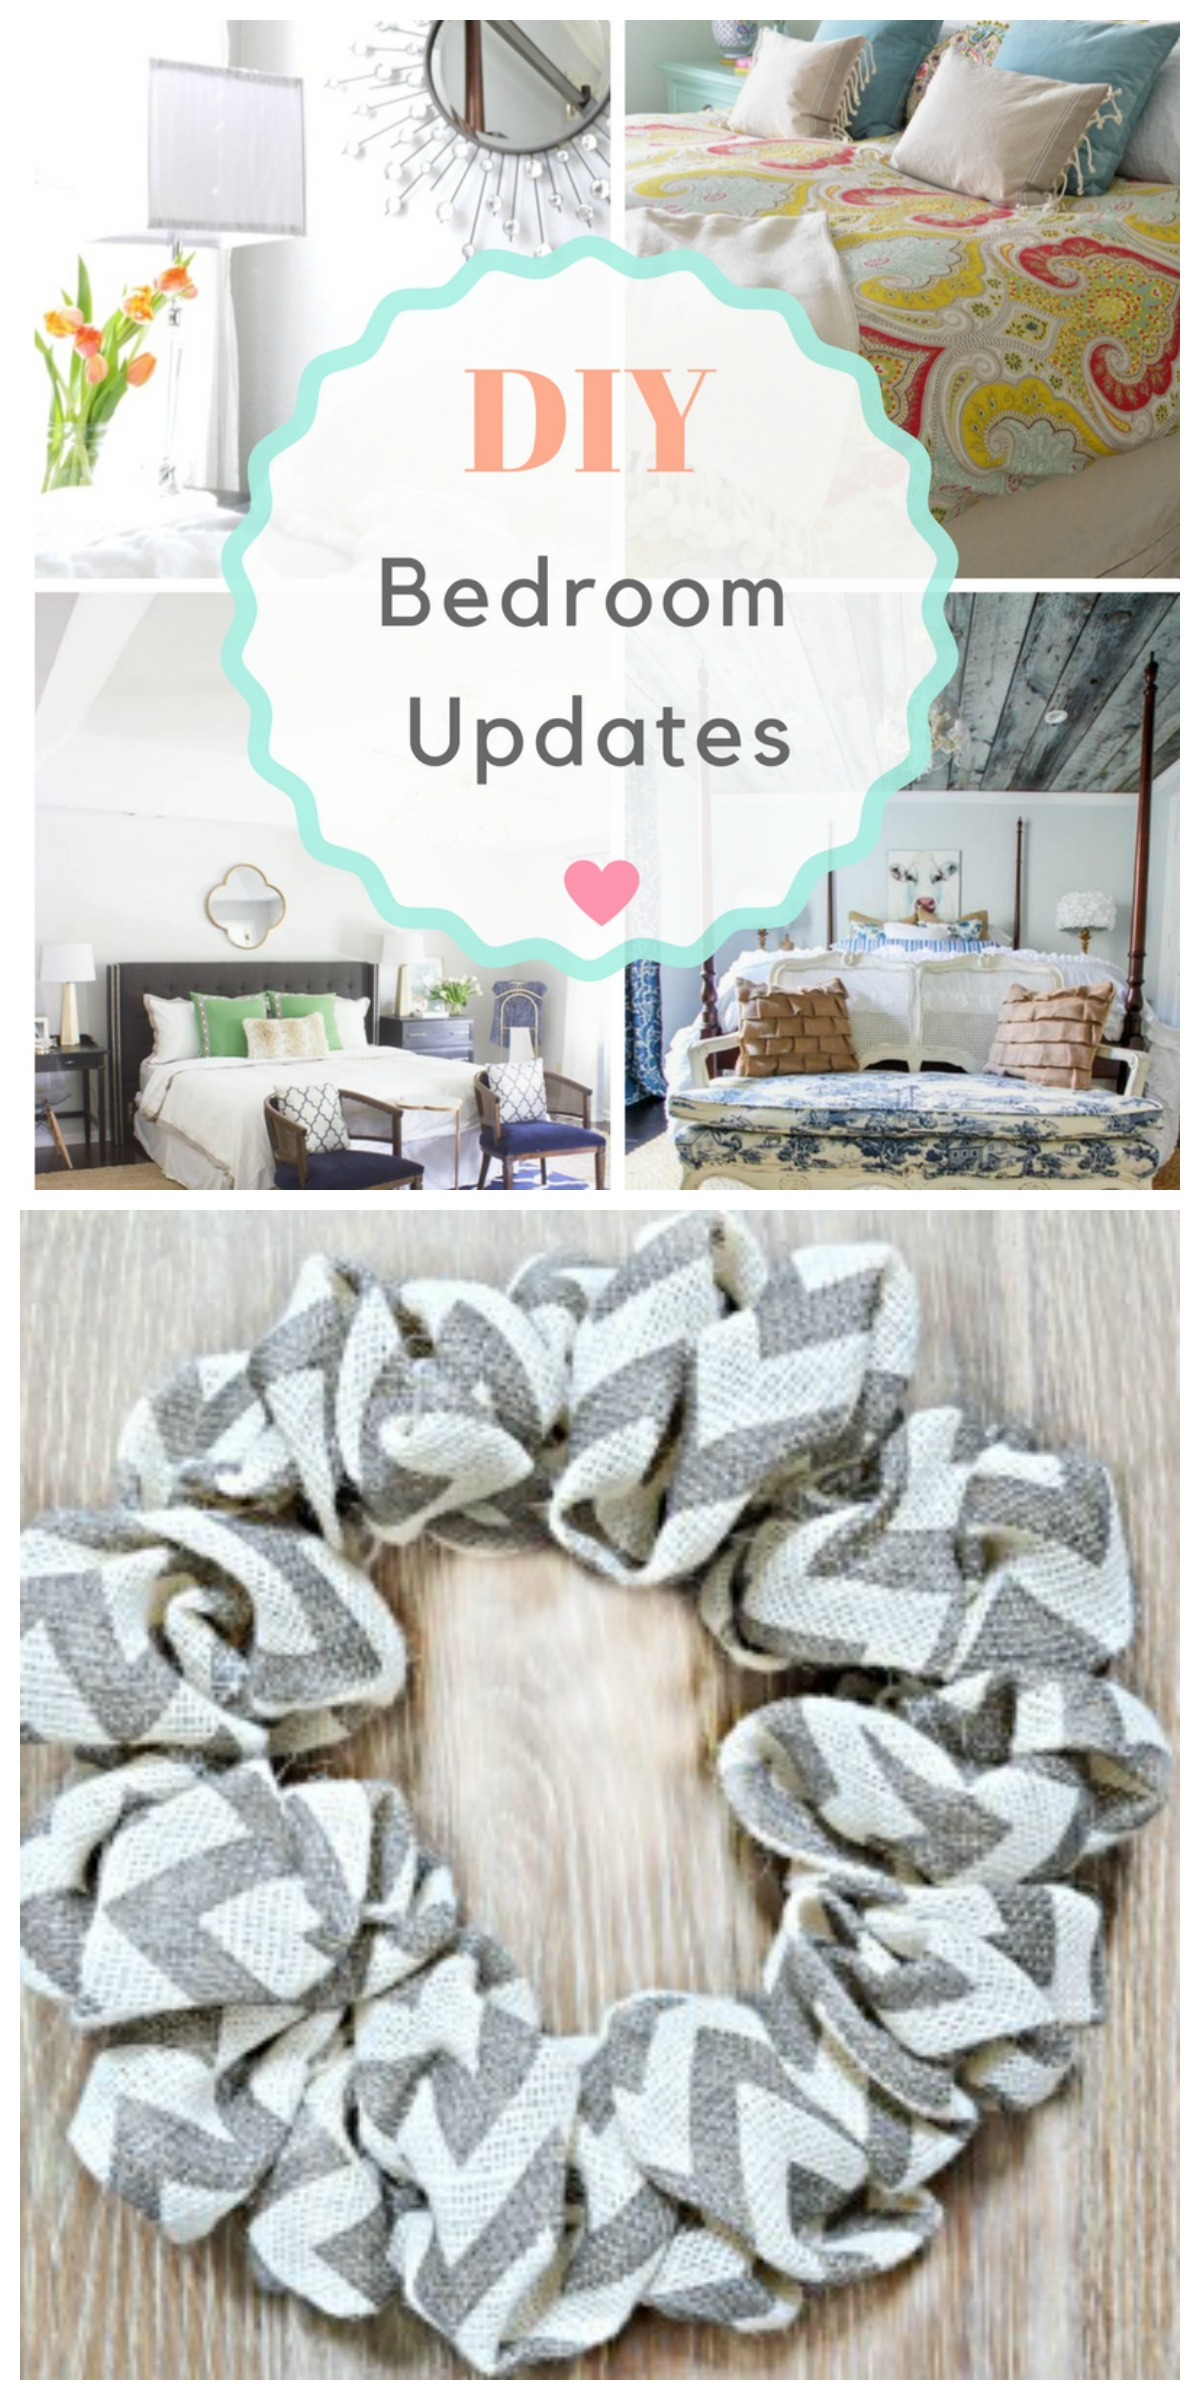 inspire-me-monday-bedroom-updates-and-wreath